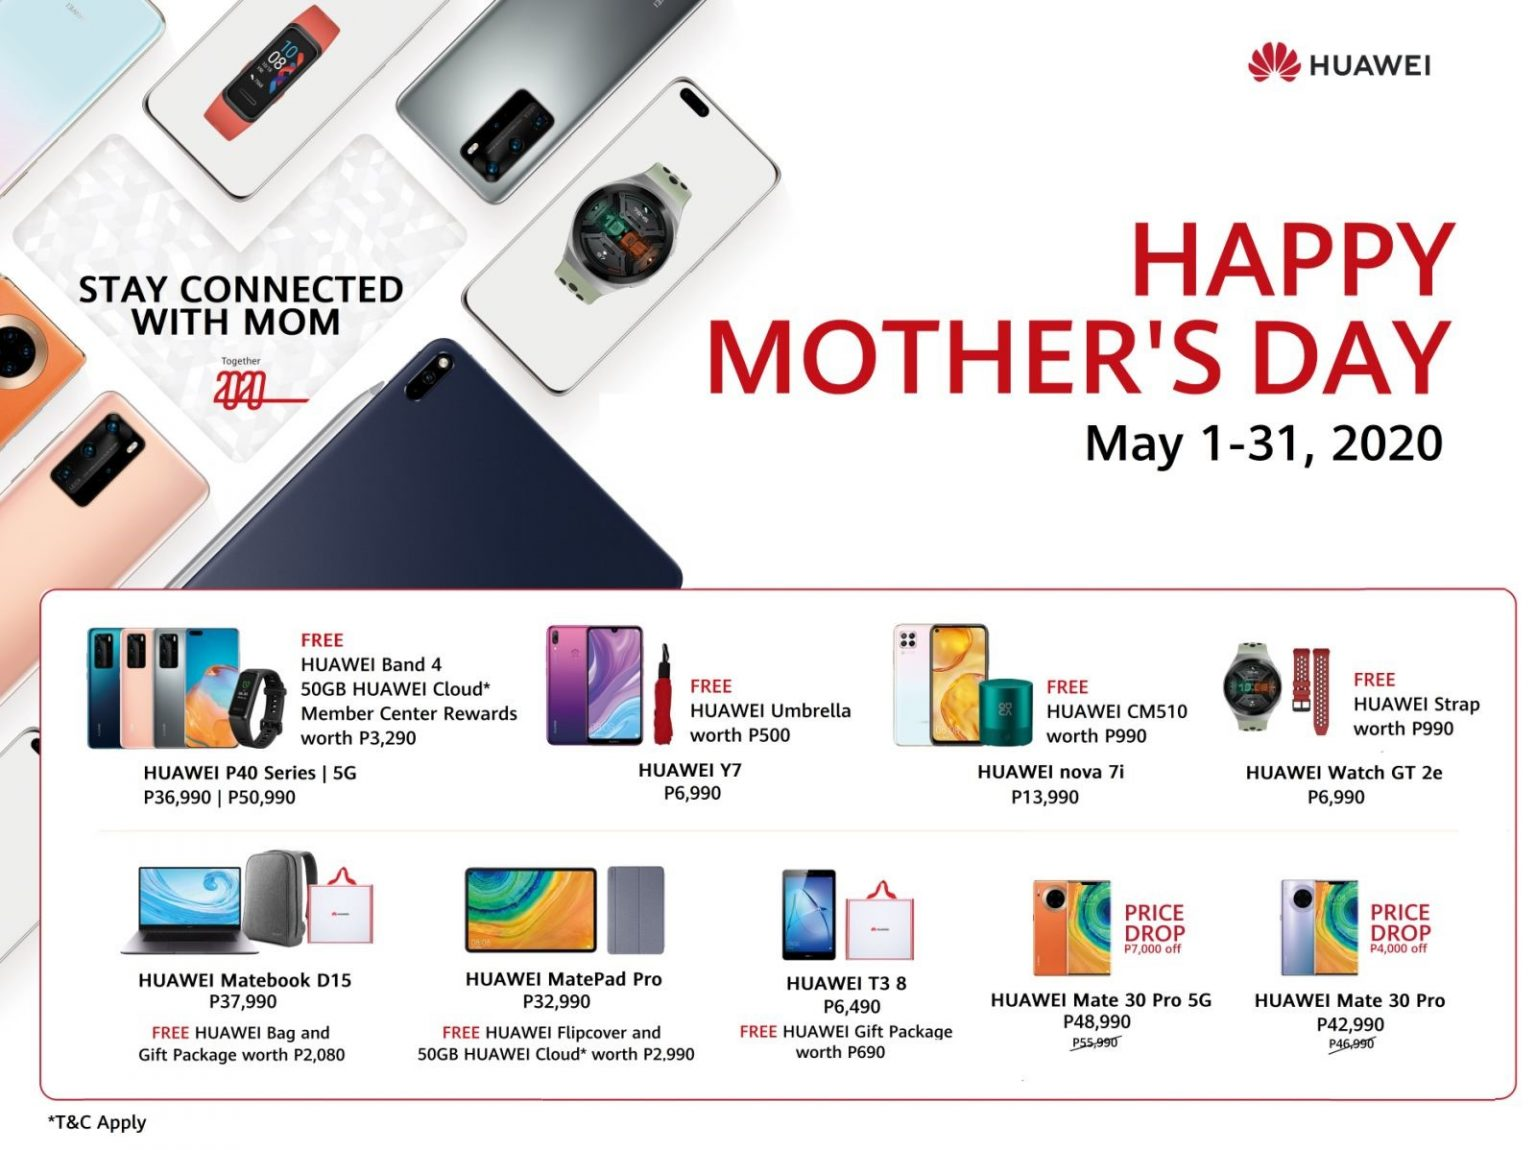 huawei mother's day promo 2020